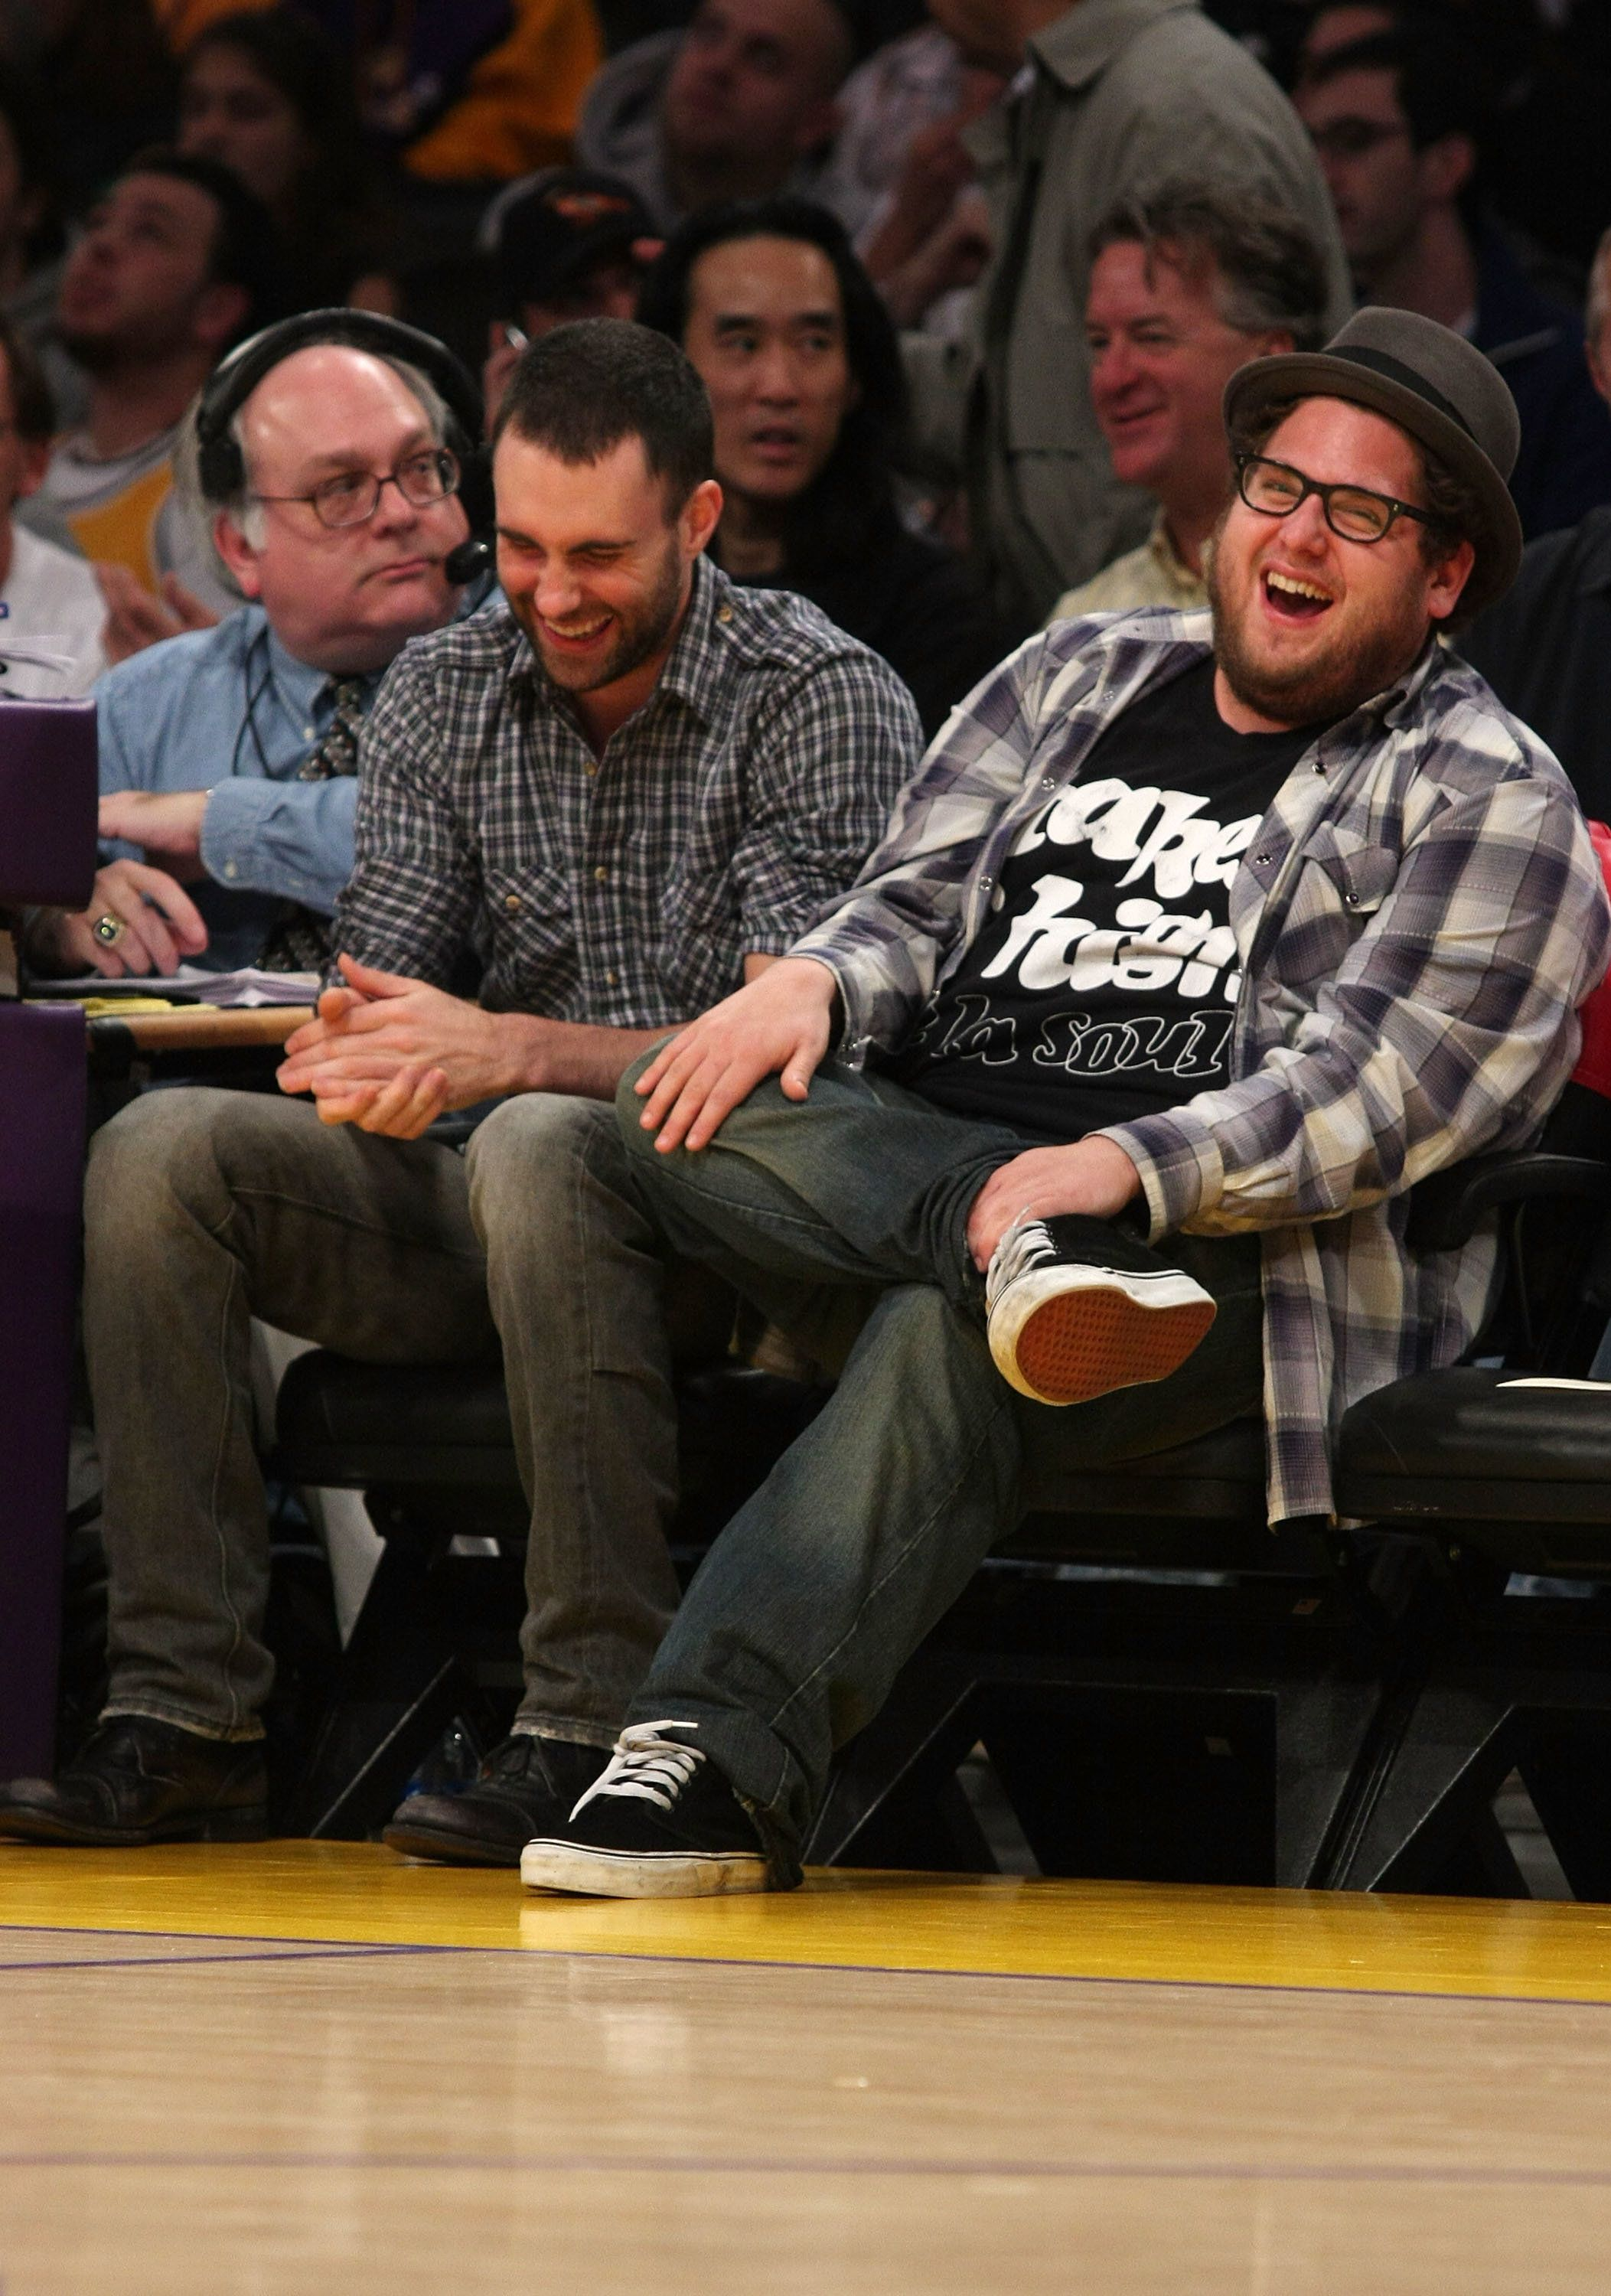 Adam Levine and Jonah Hill have been friends since they were kids.